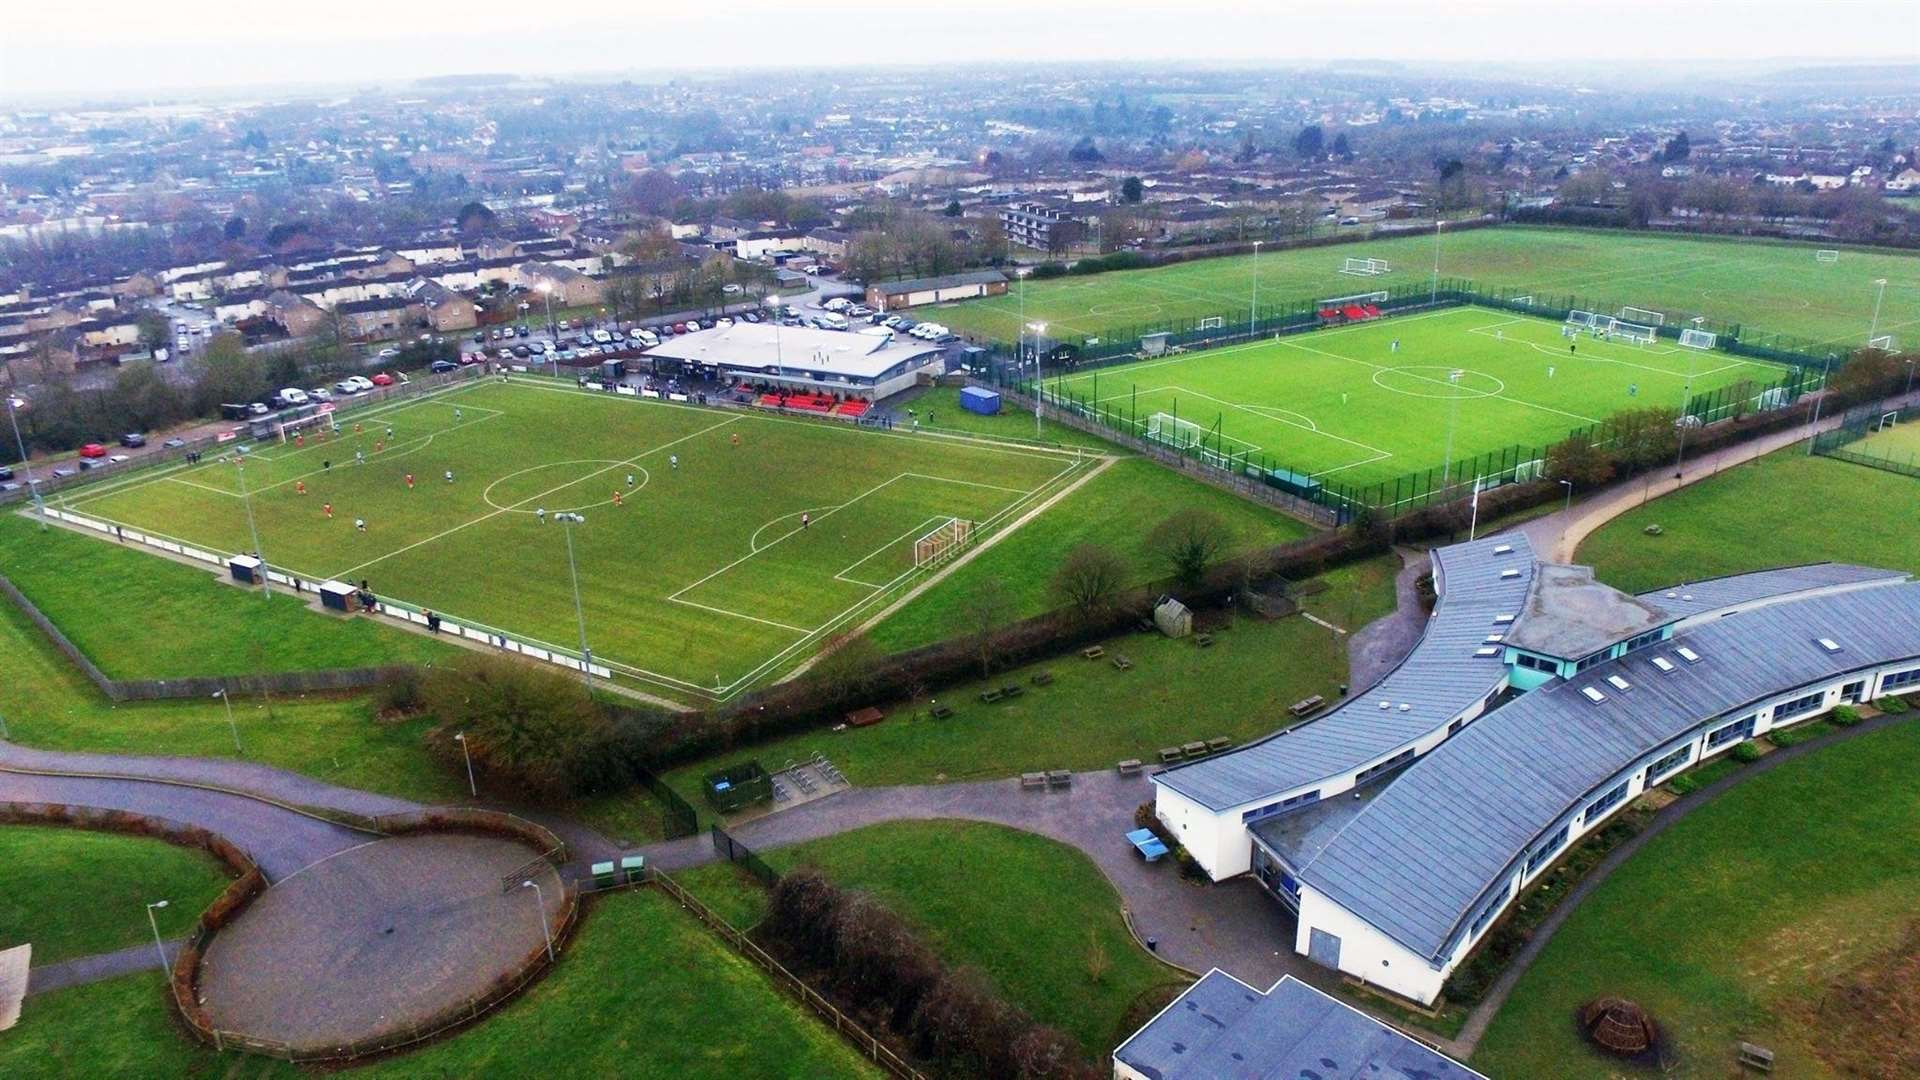 CLOSEST RIVALS IN FA CUP? Haverhill Rovers and Haverhill Borough are New Croft neighbours, but do not pitch share in an unusual set-up